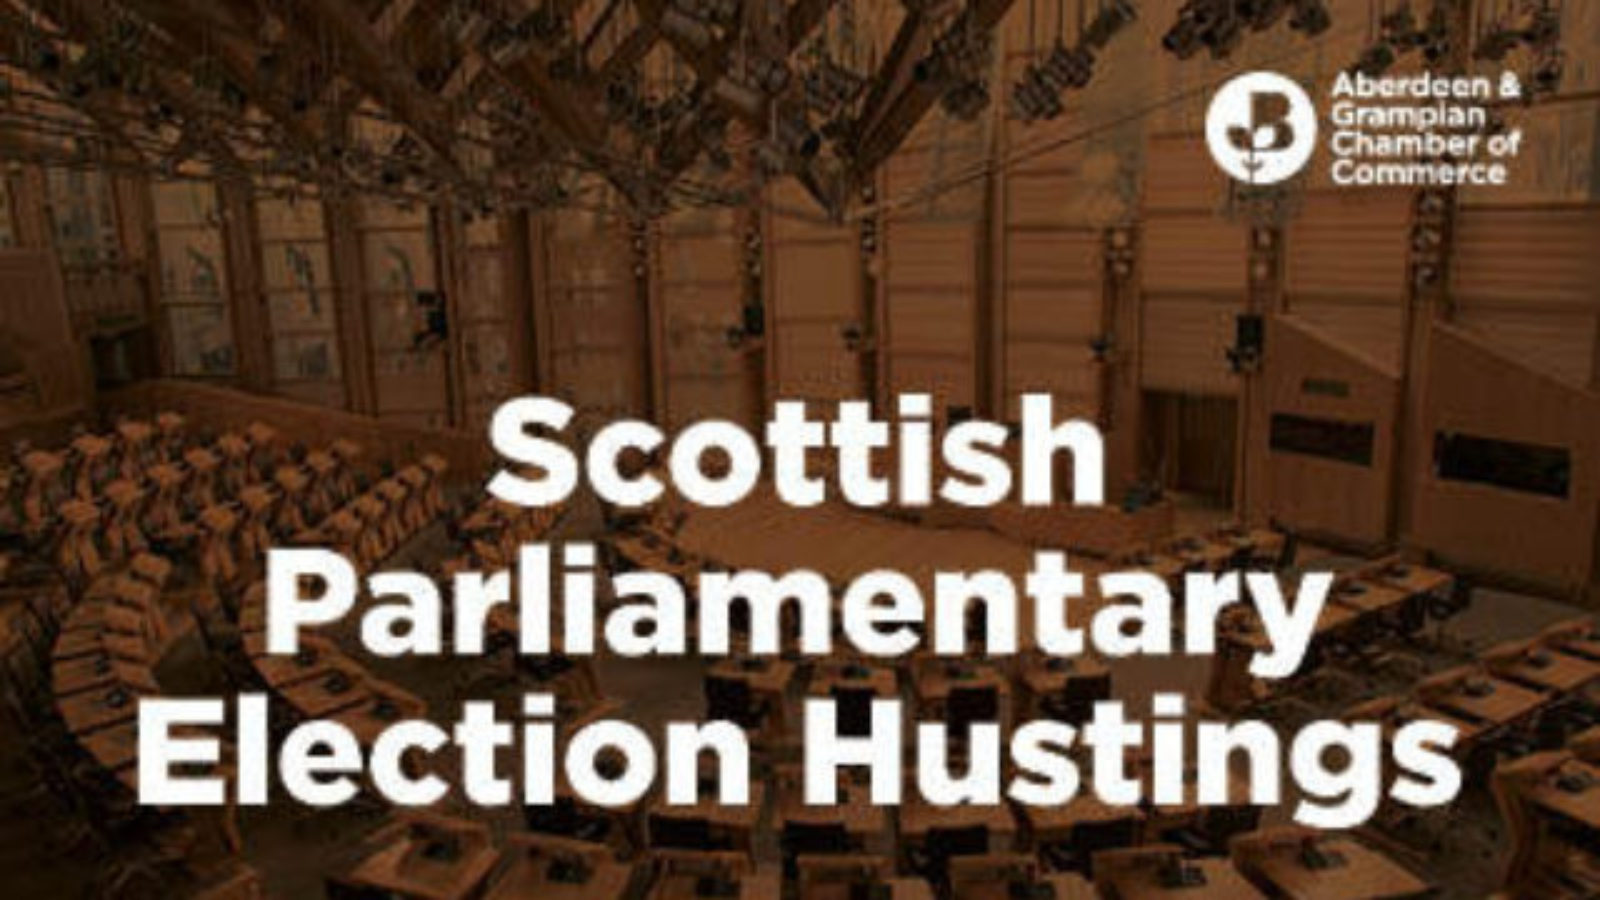 Chamber to host Scottish parliamentary election hustings